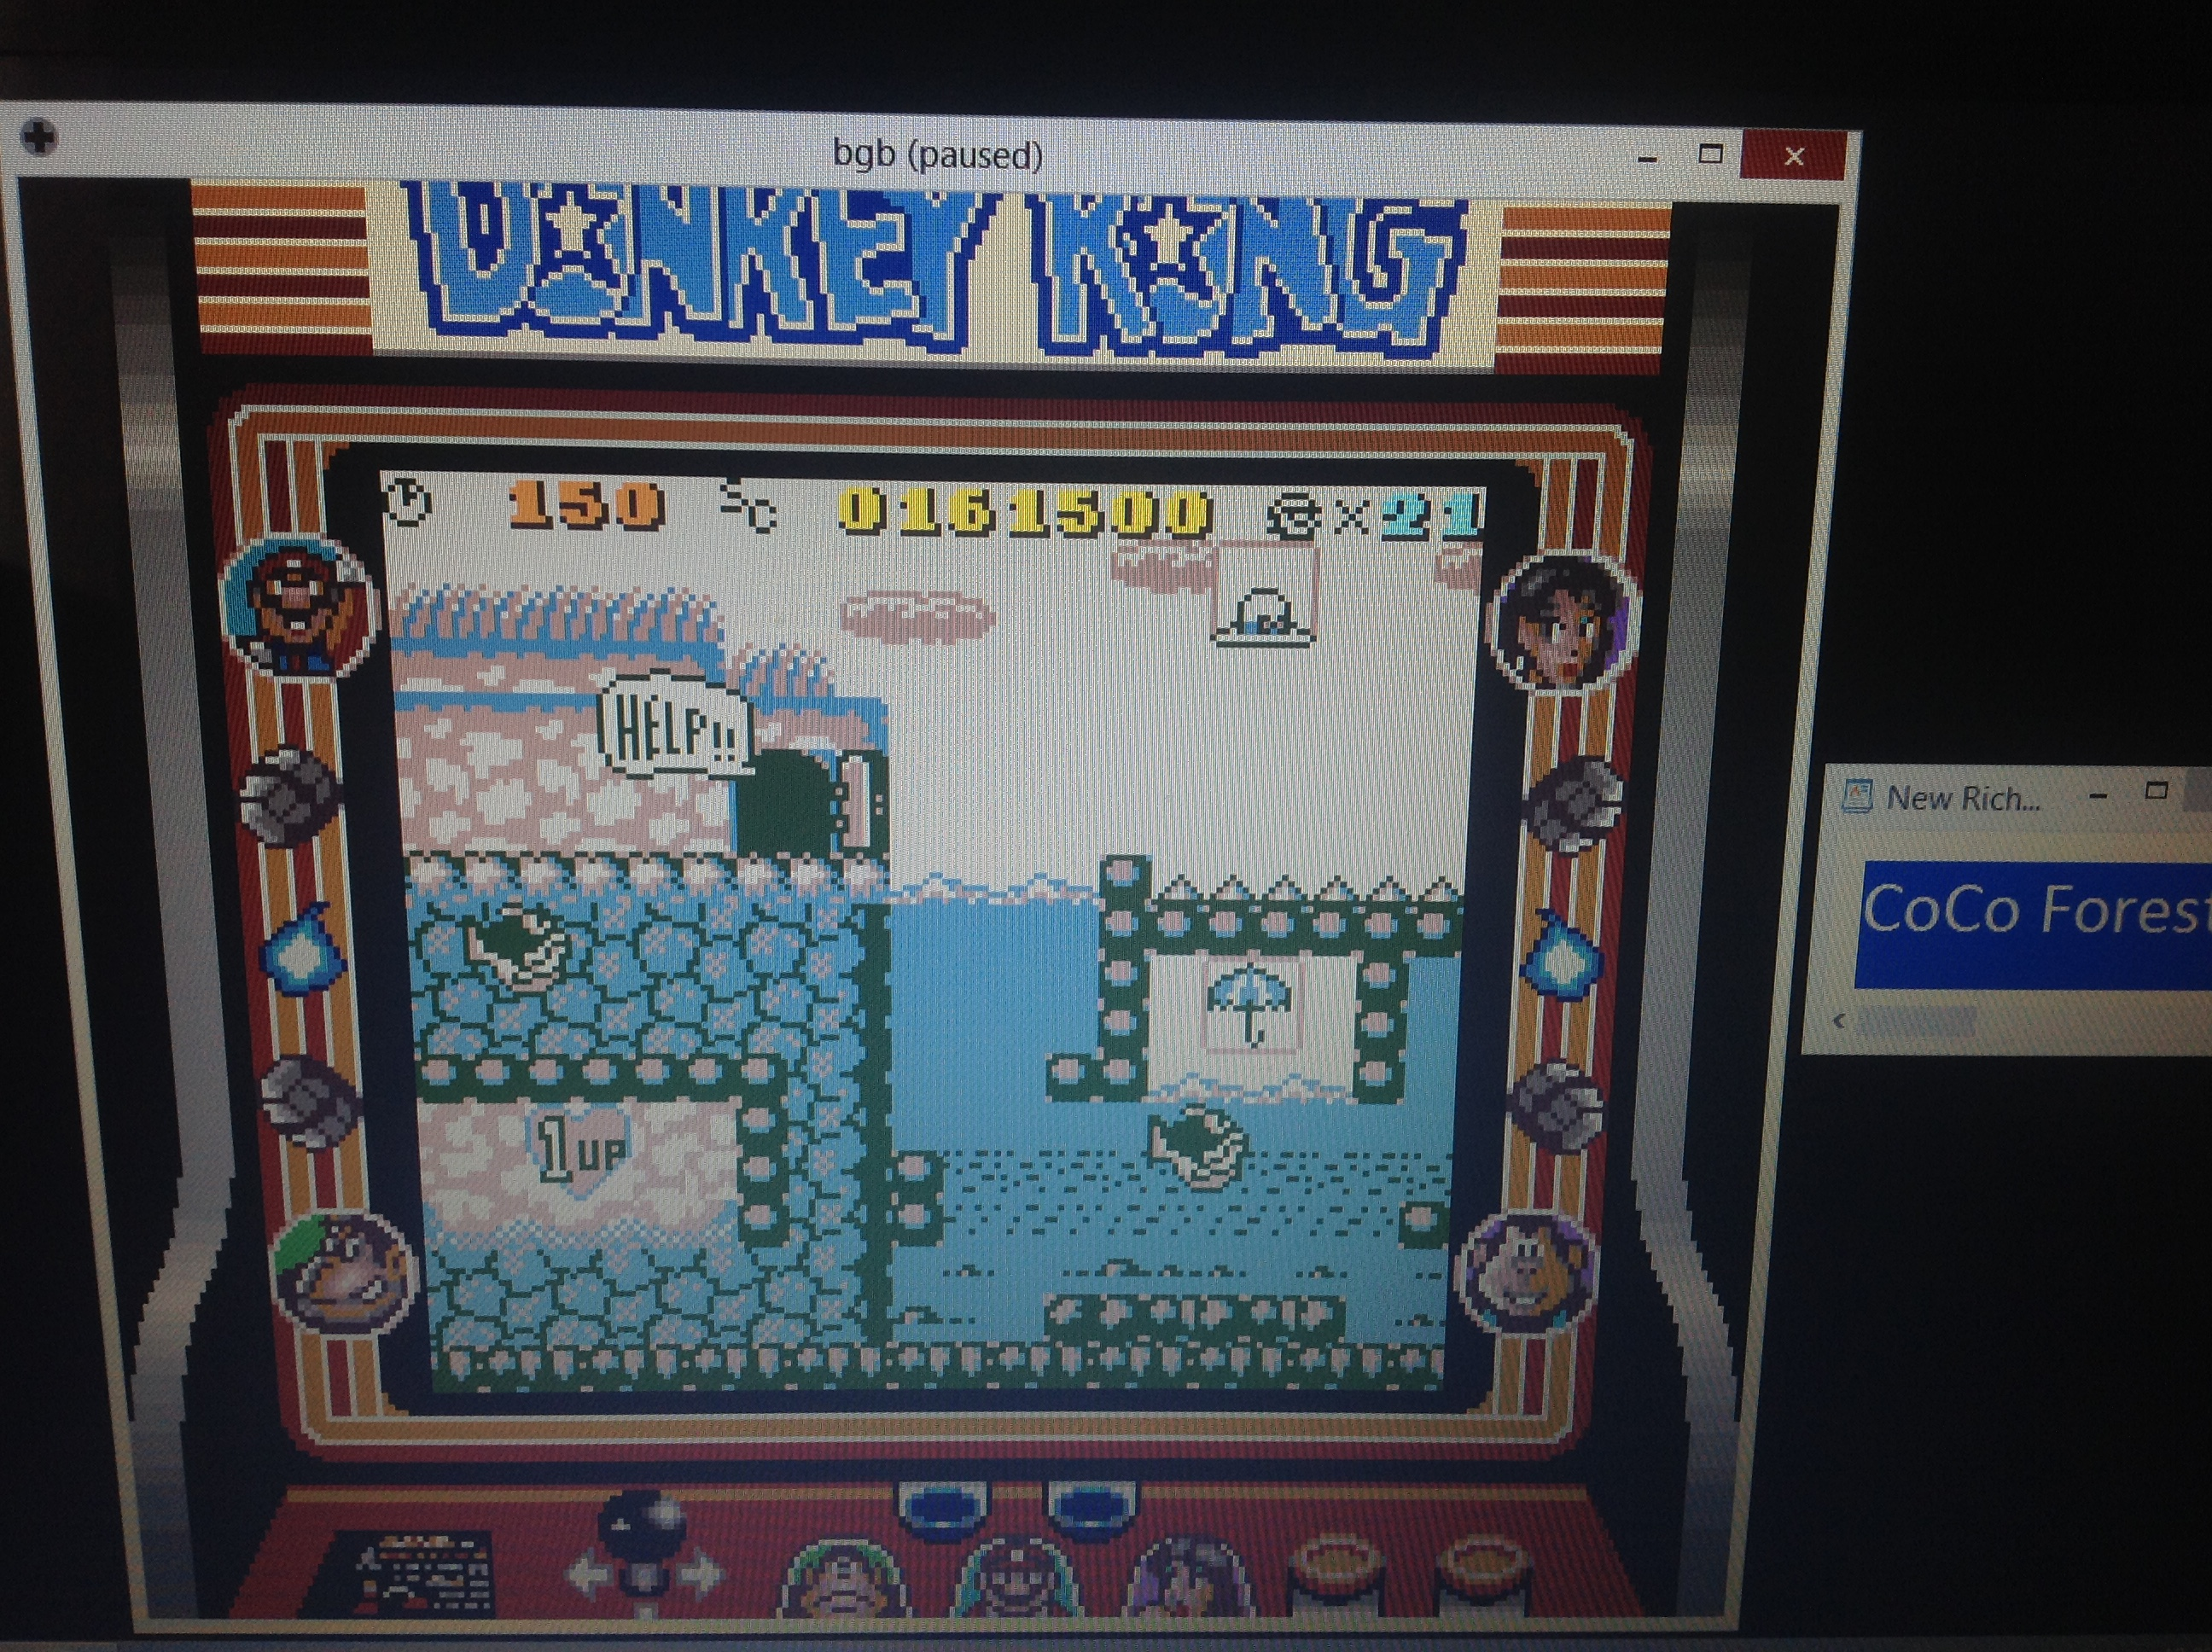 CoCoForest: Donkey Kong (Game Boy Emulated) 161,500 points on 2018-10-04 06:03:18